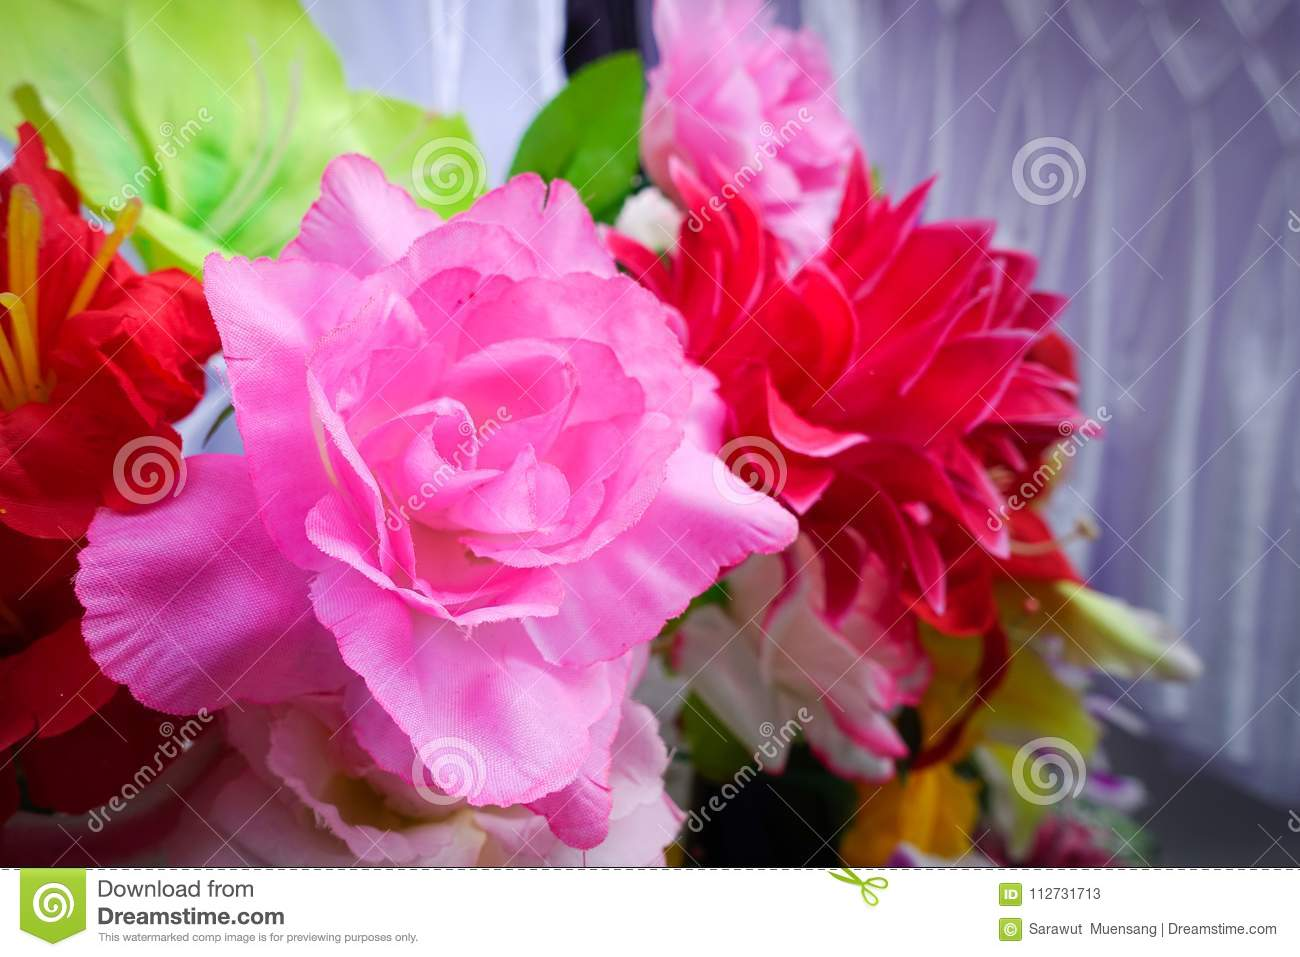 Fake Flower And Floral Background Rose Flowers Made Of Fabric The